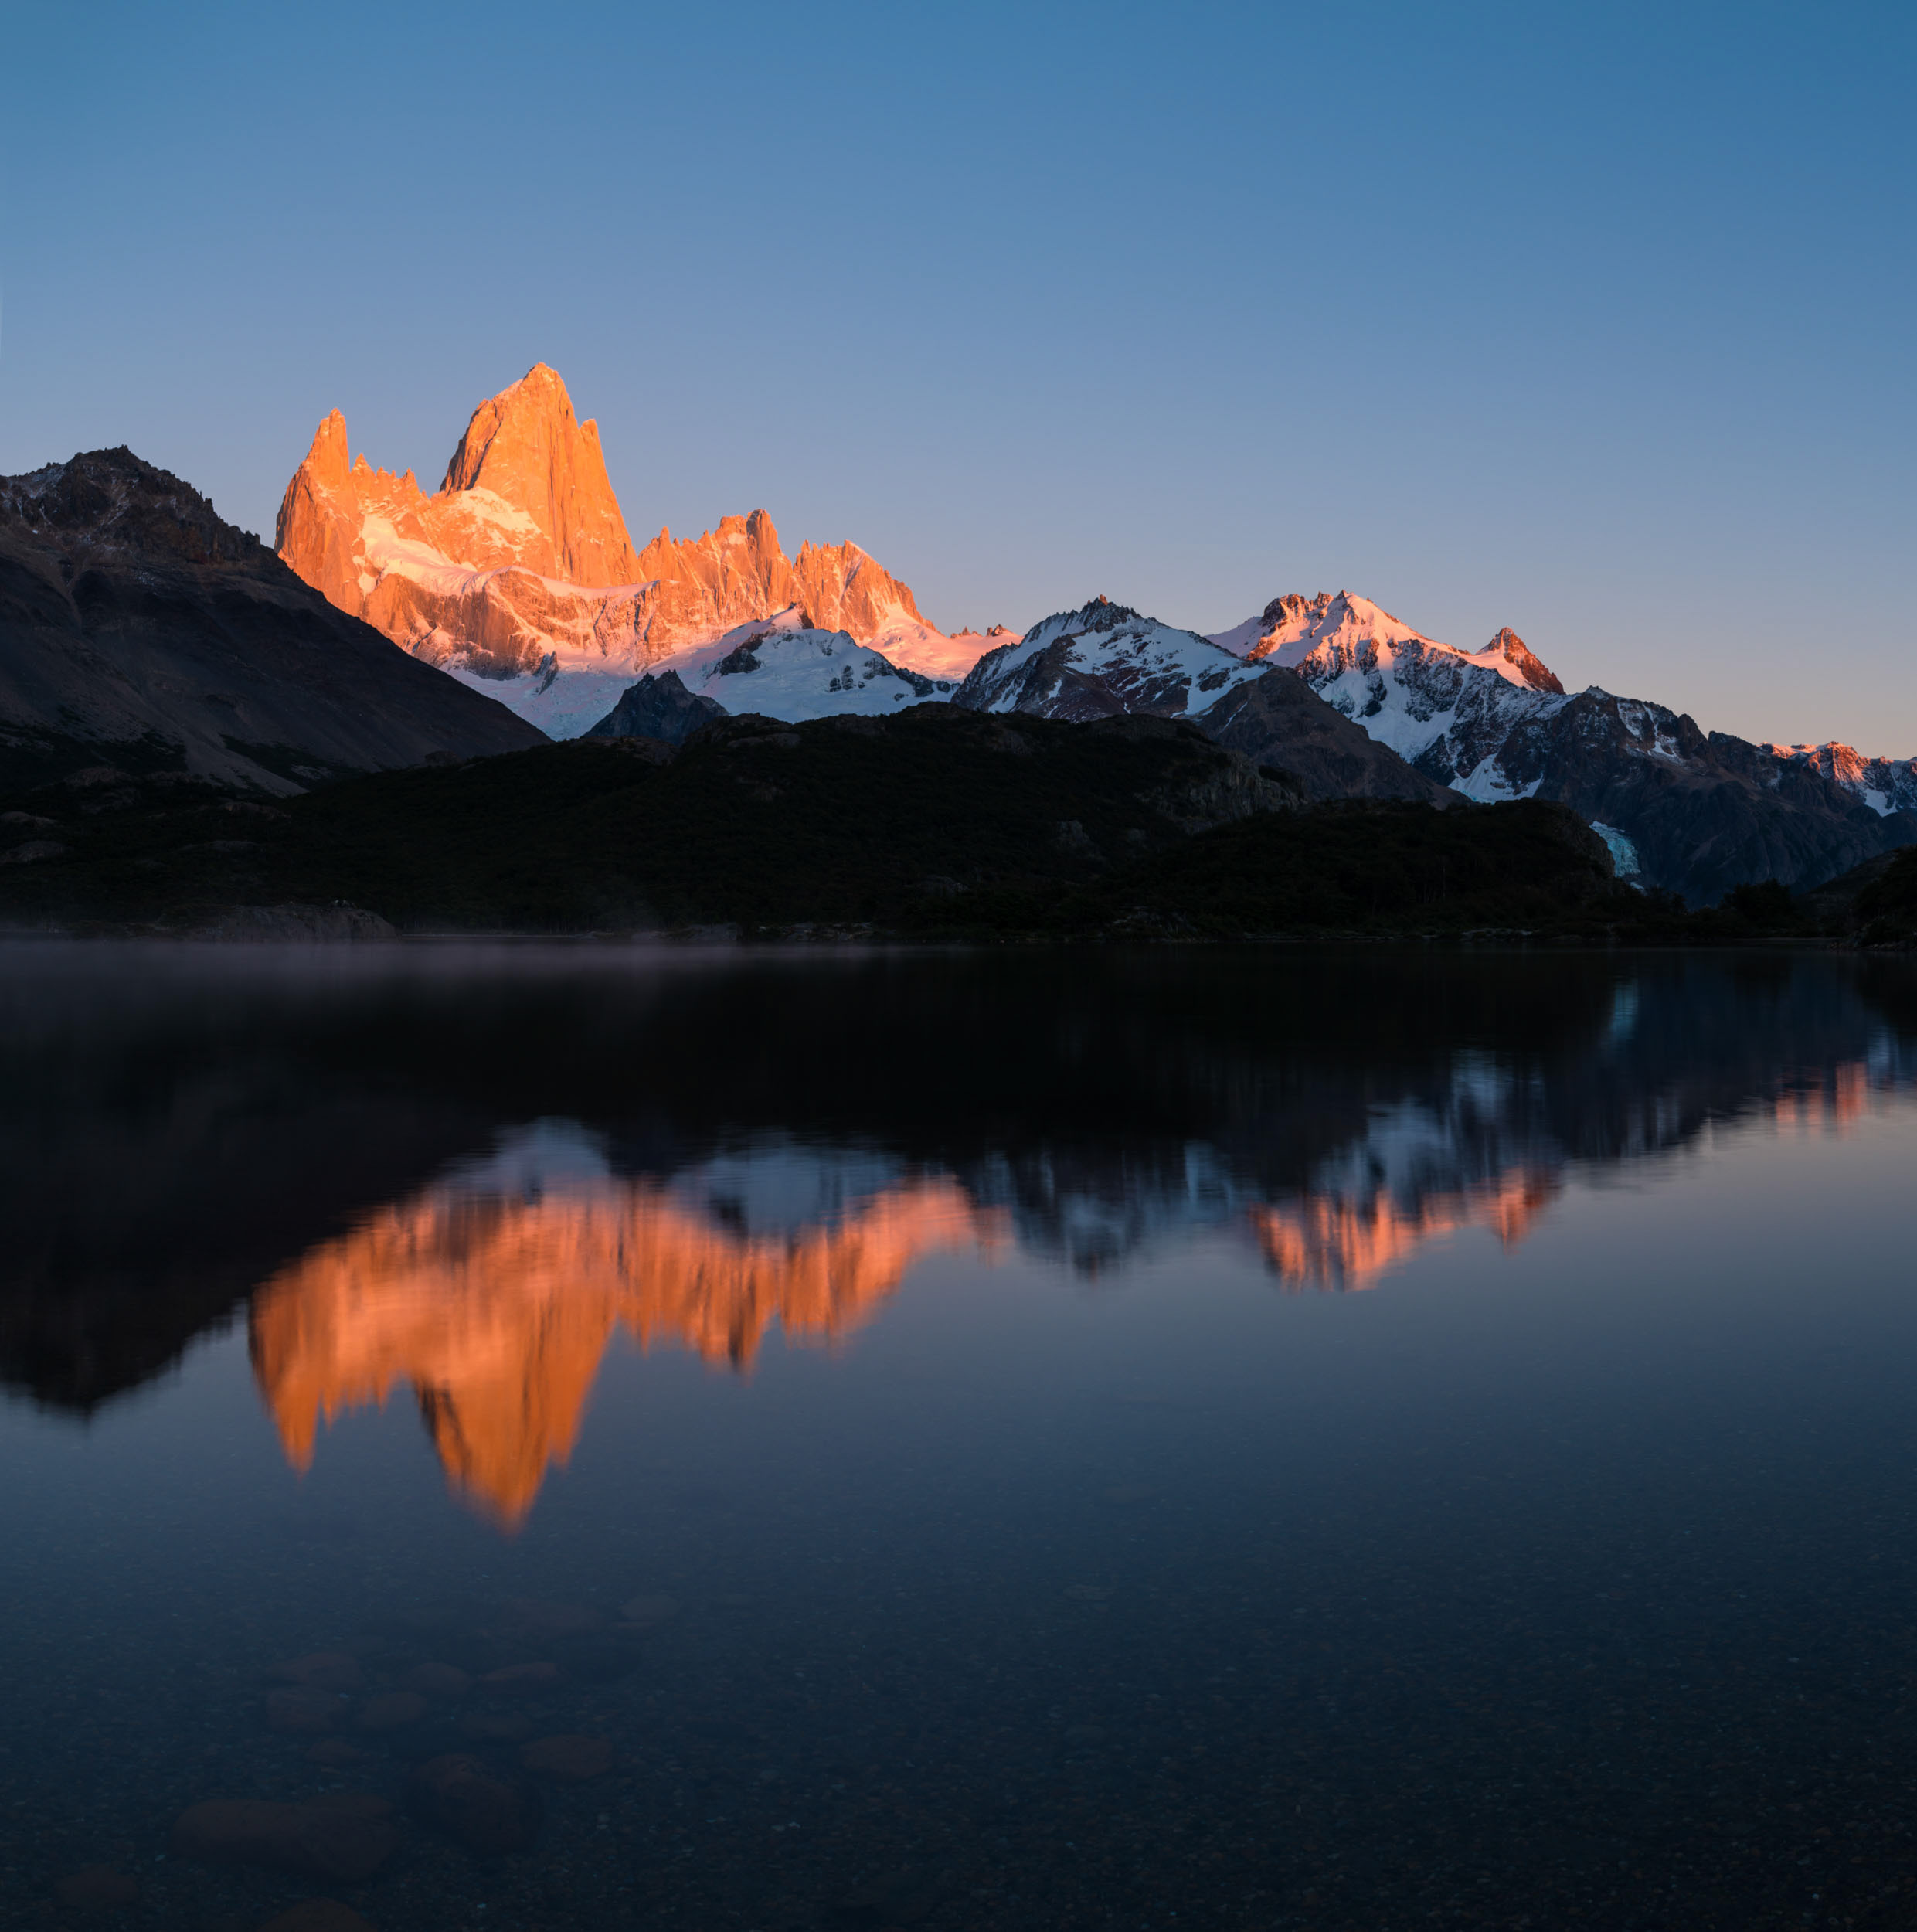 sunrise-tranquil-lake-capri-fitz-roy-patagonia-argentina-still-morning